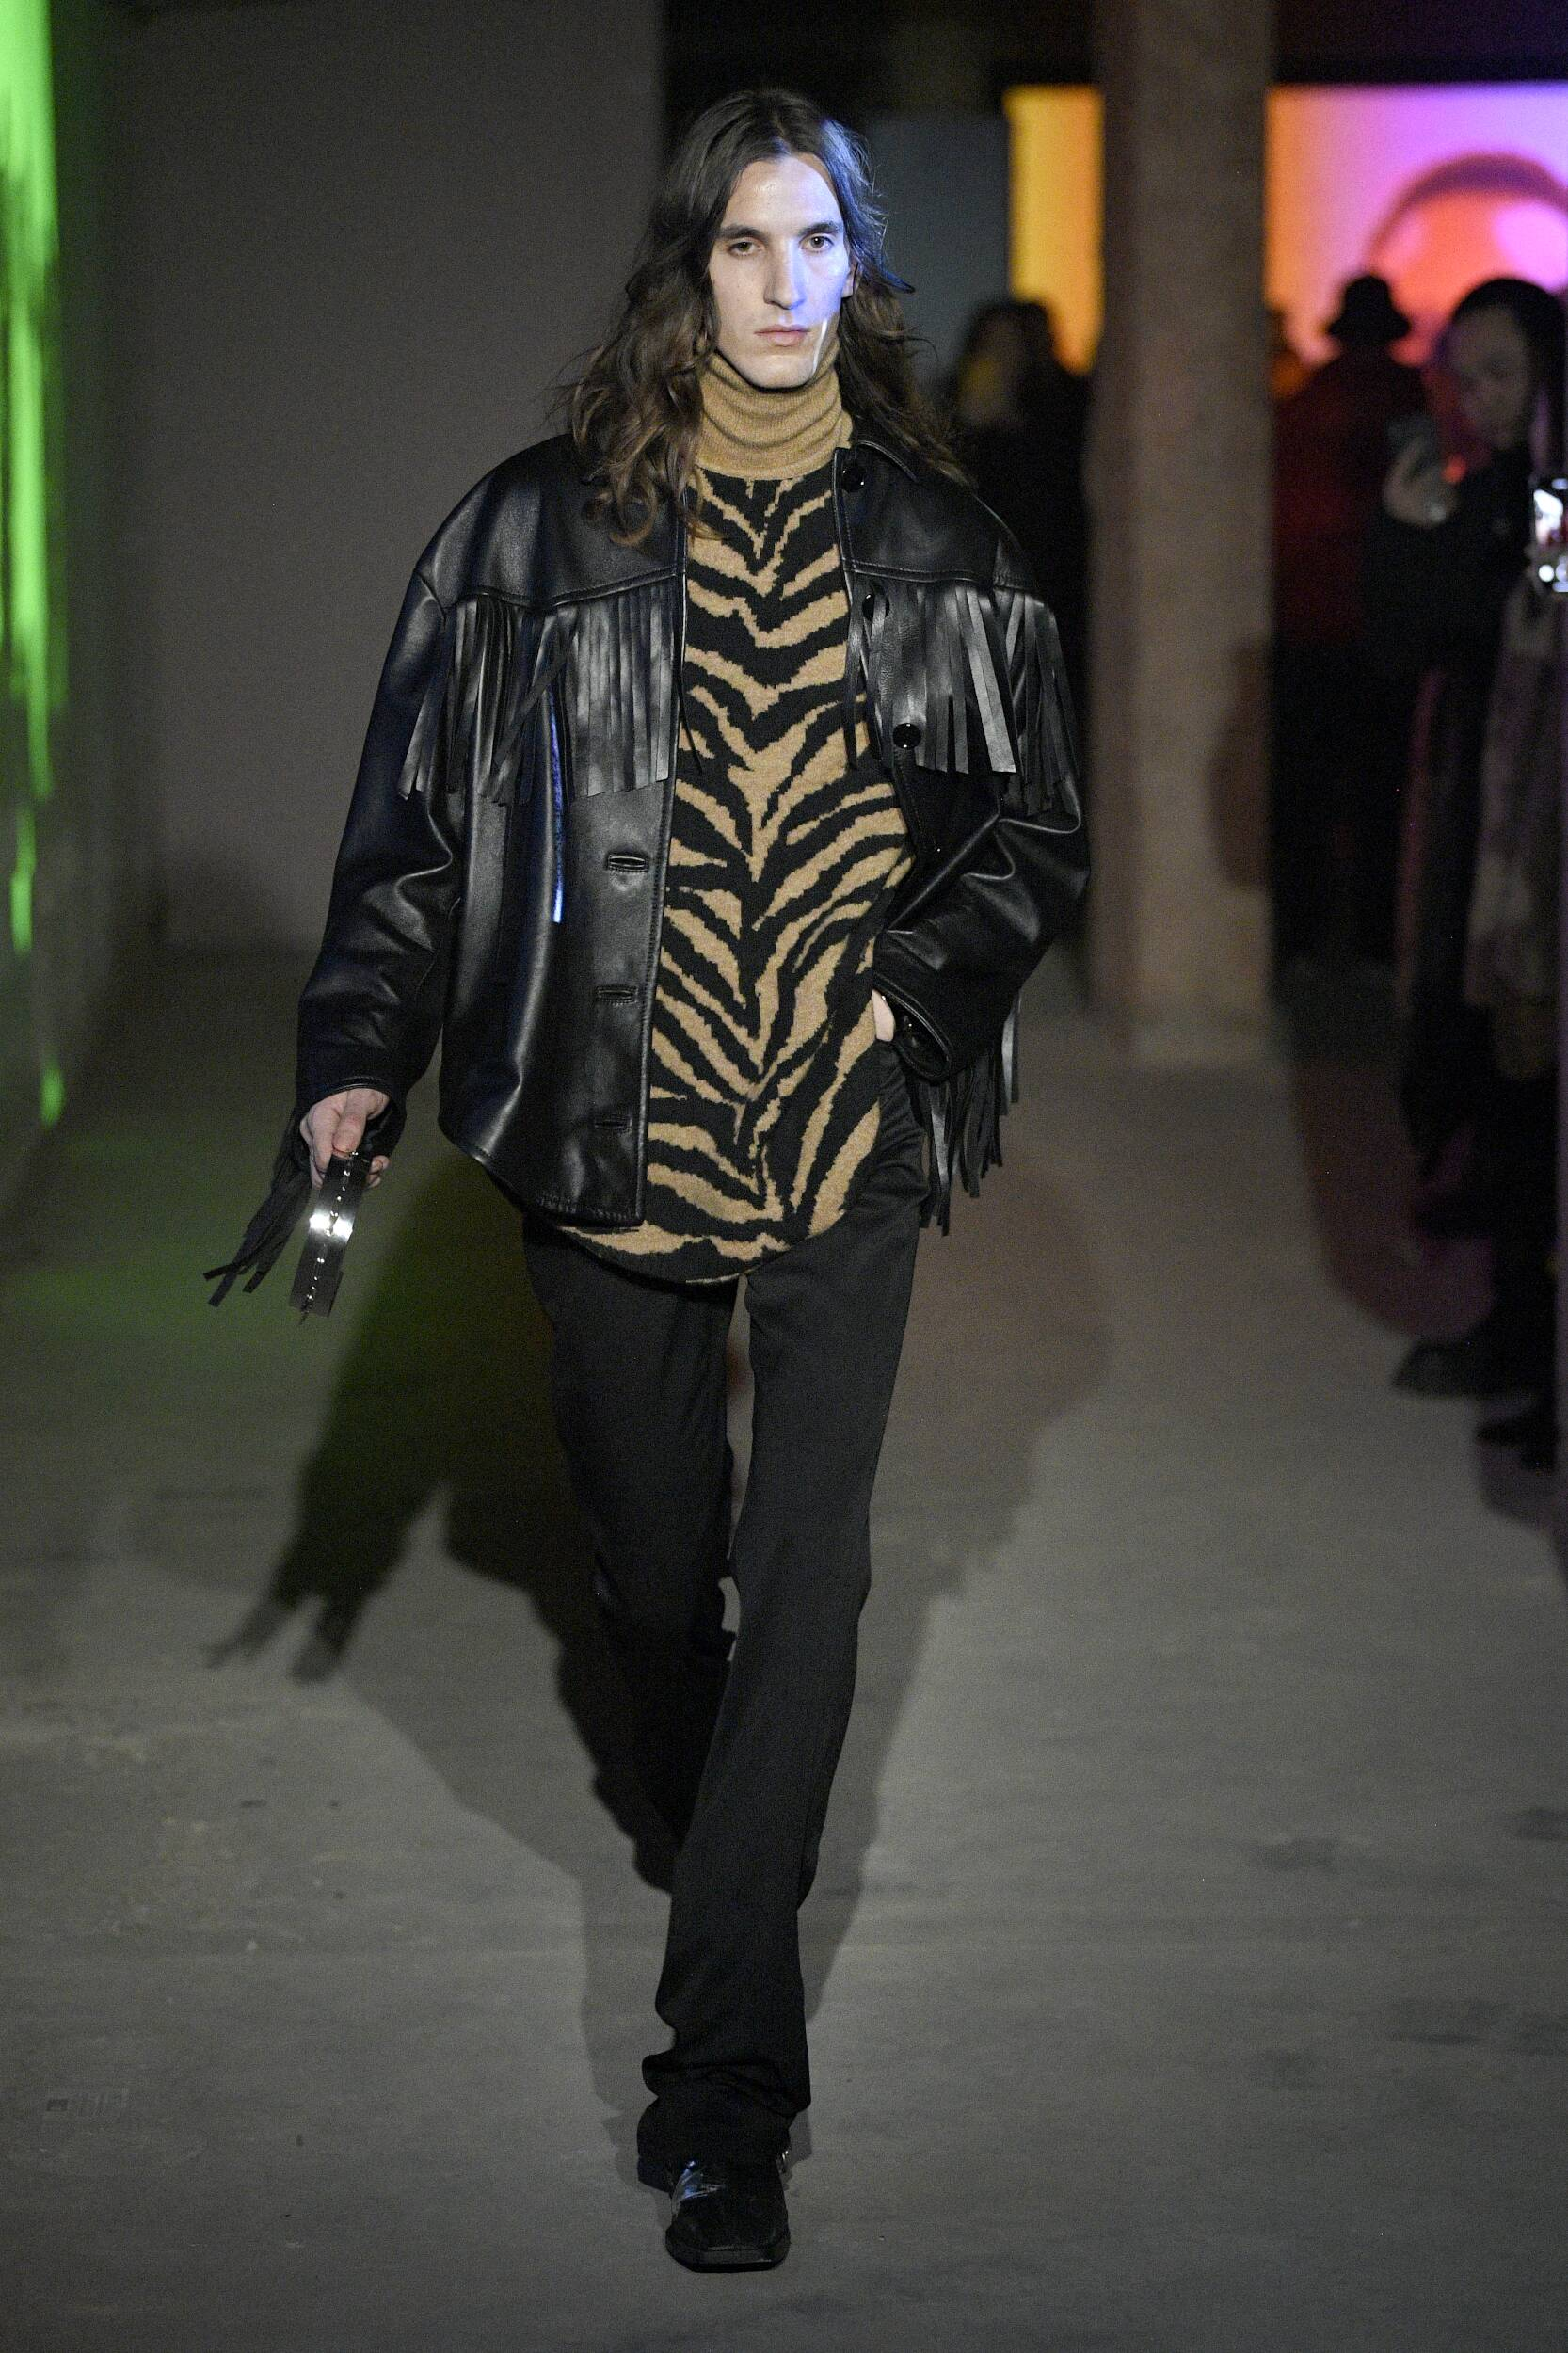 MM6 Maison Margiela Fall Winter 2020 Mens Collection London Fashion Week